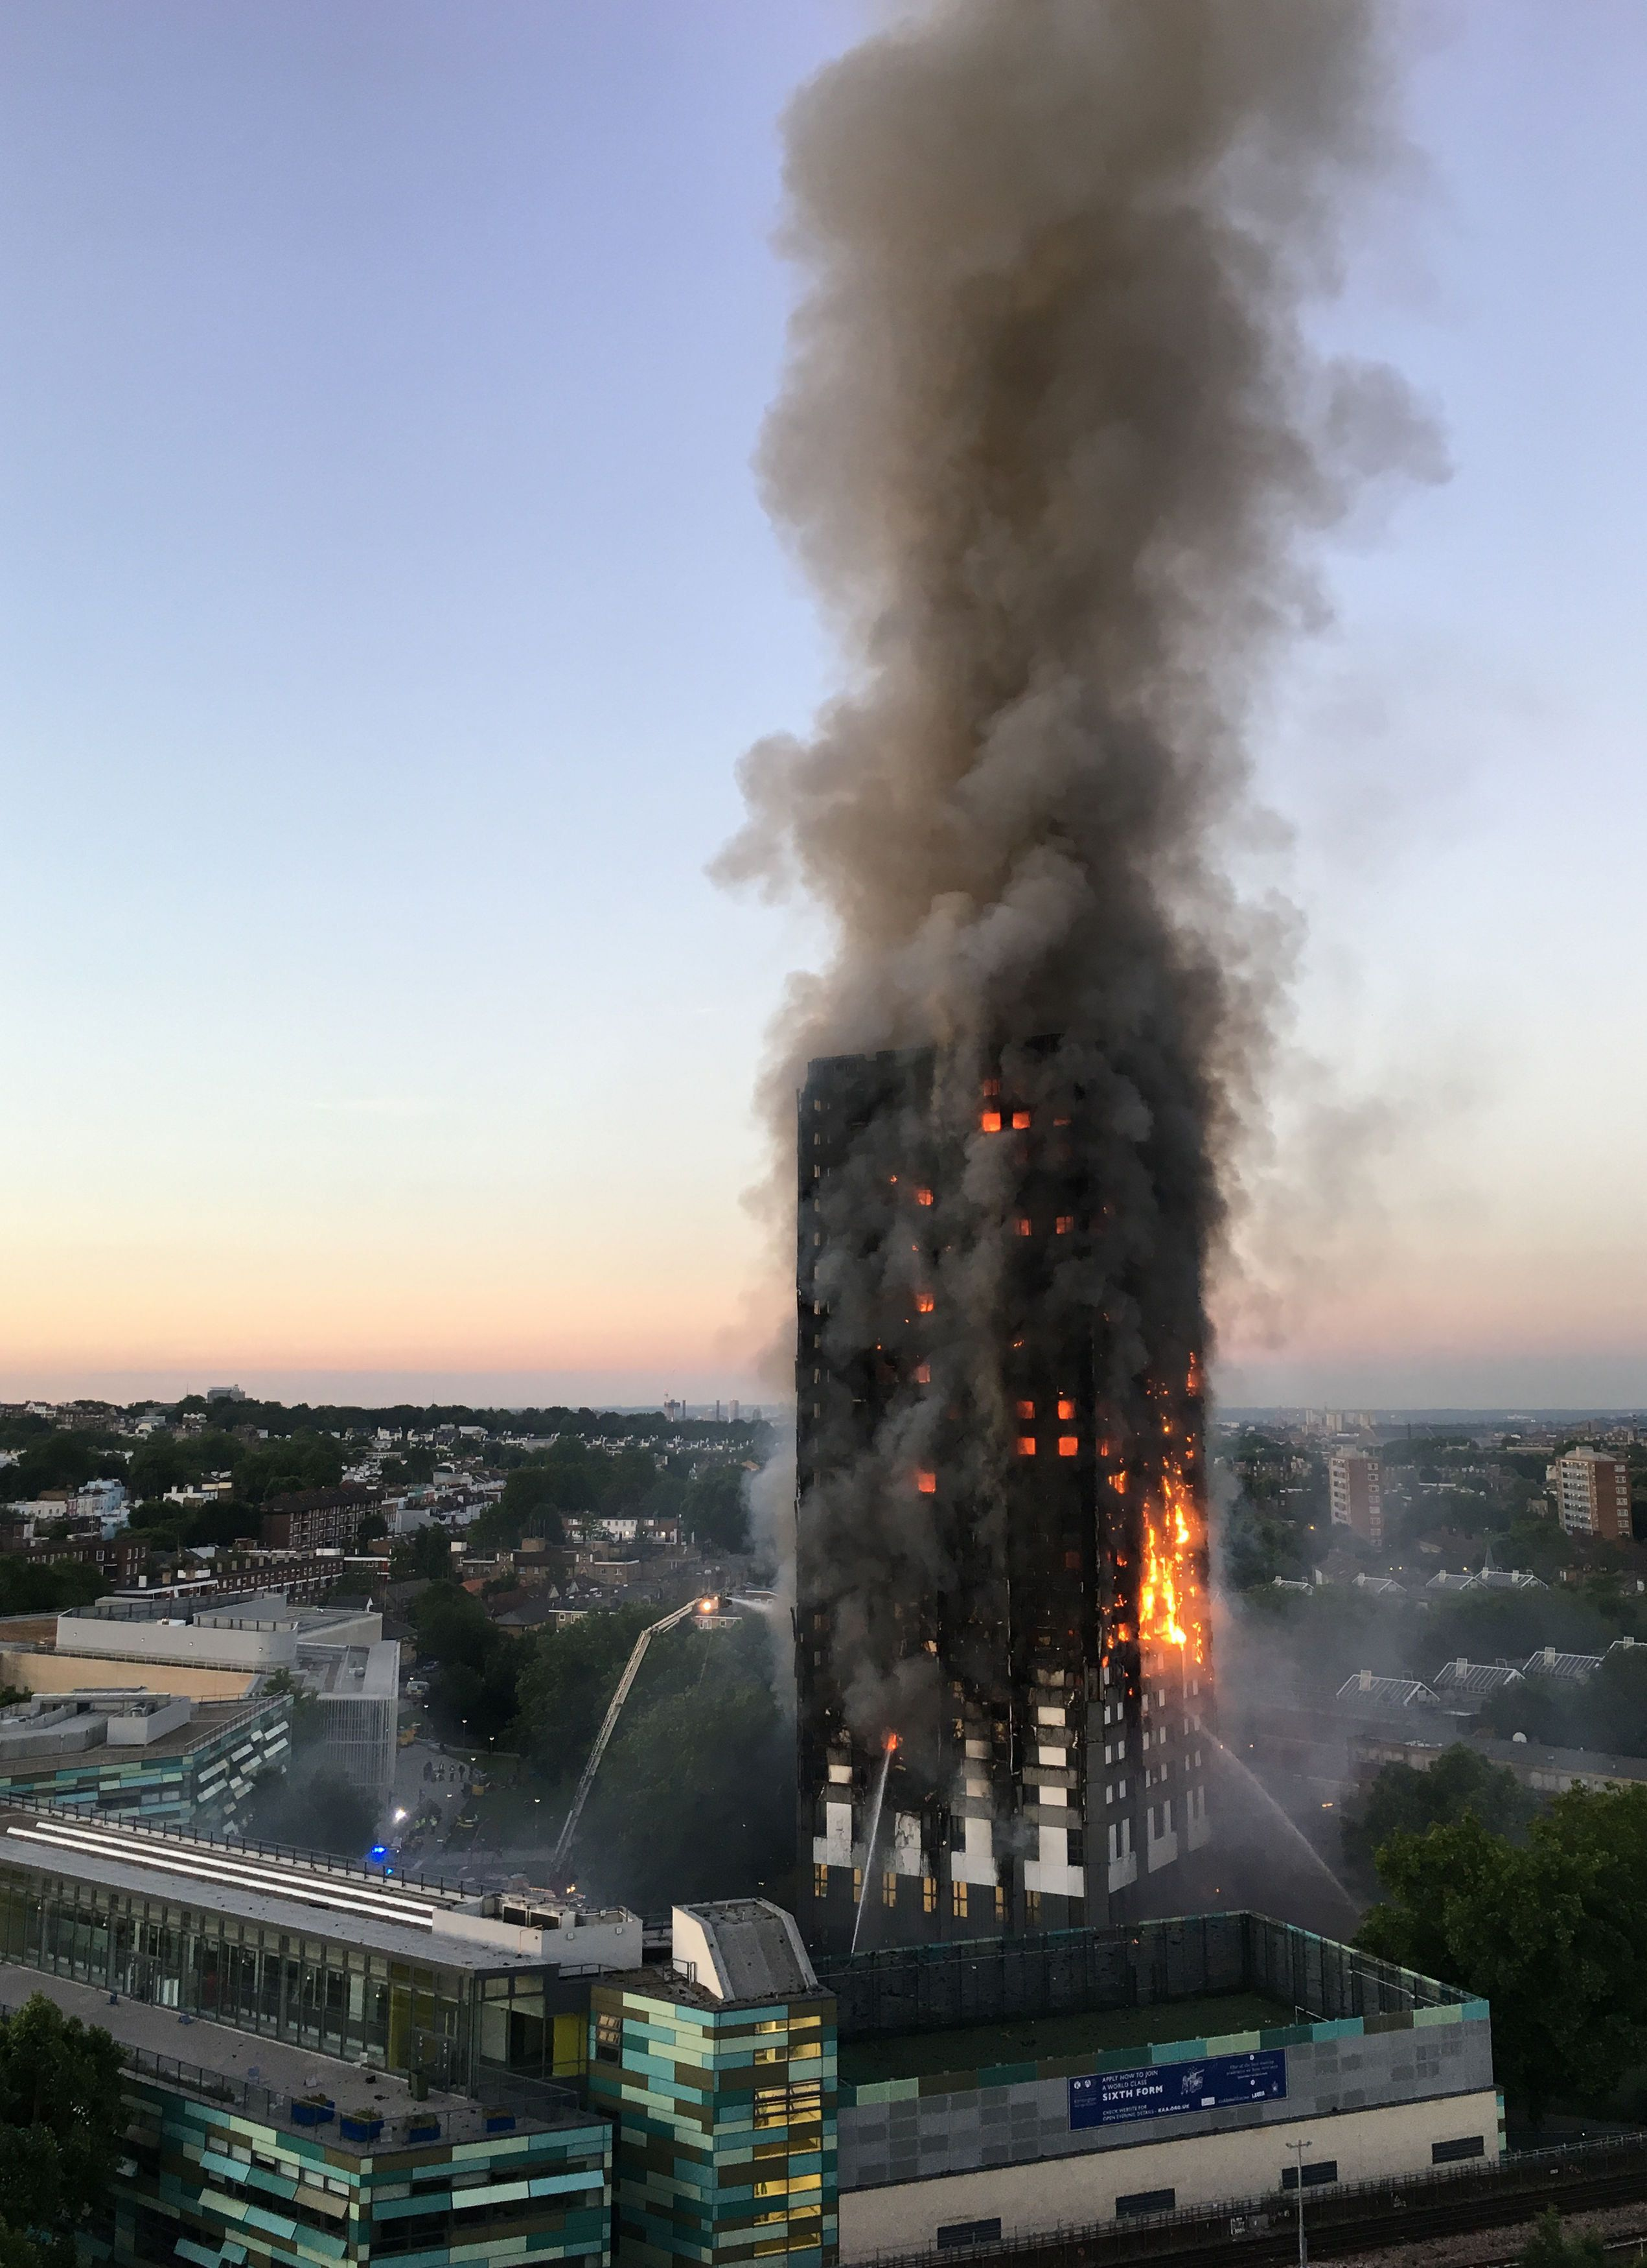 Grenfell Resident On 14th Floor Considered Tying Bed Sheets Together To Escape